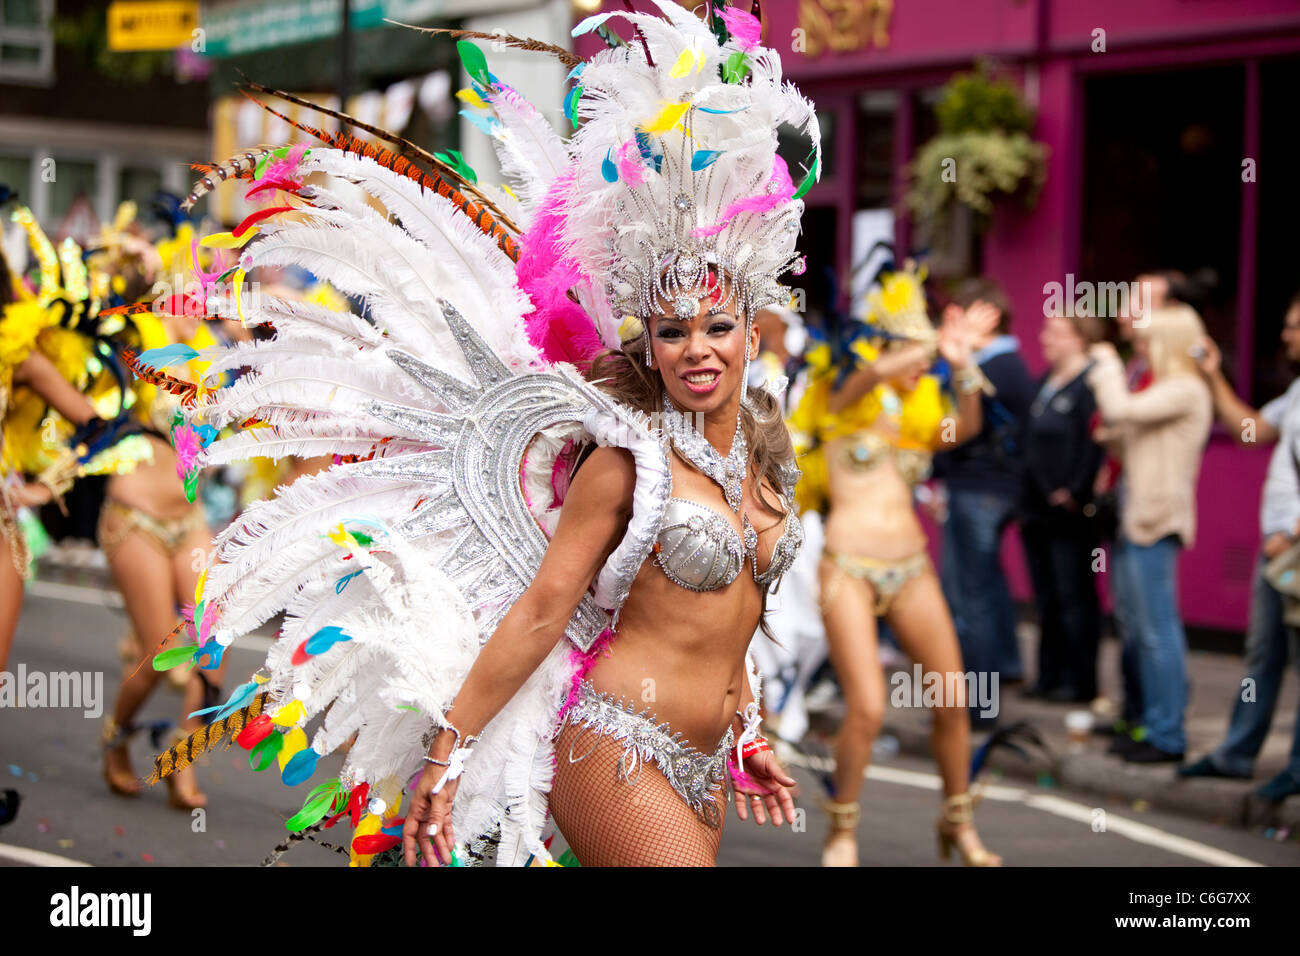 Samba school dancer at The Notting Hill Carnival 2011, London, England, UK - Stock Image